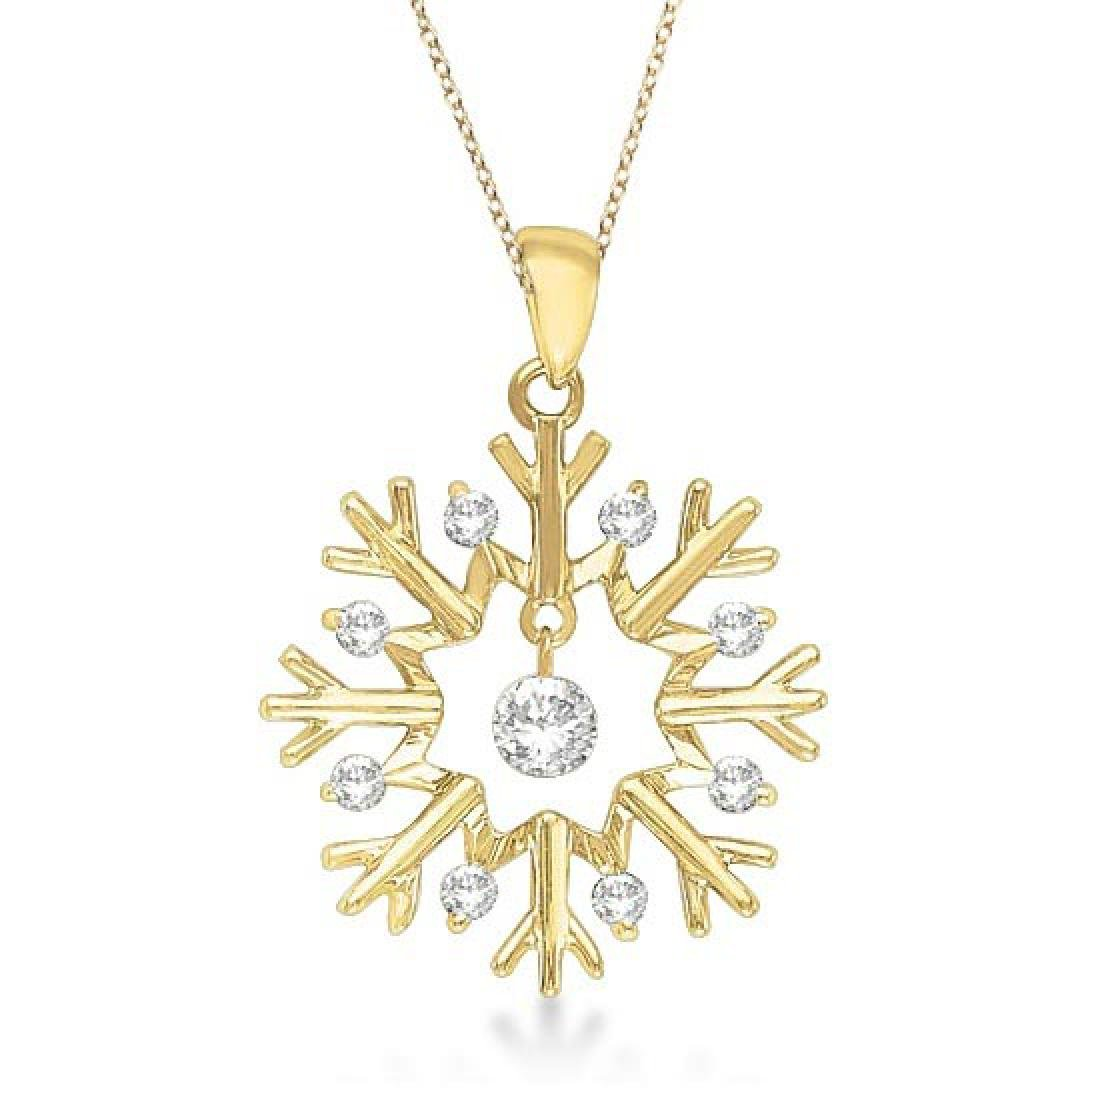 Snowflake Shaped Diamond Pendant Necklace 14k Yellow Go